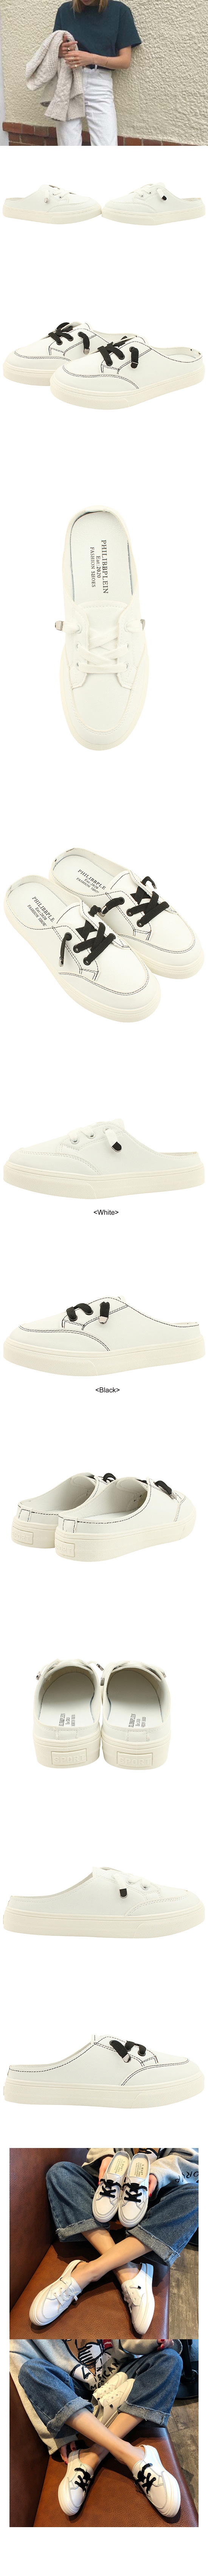 Daily Sneakers Mule Slippers White